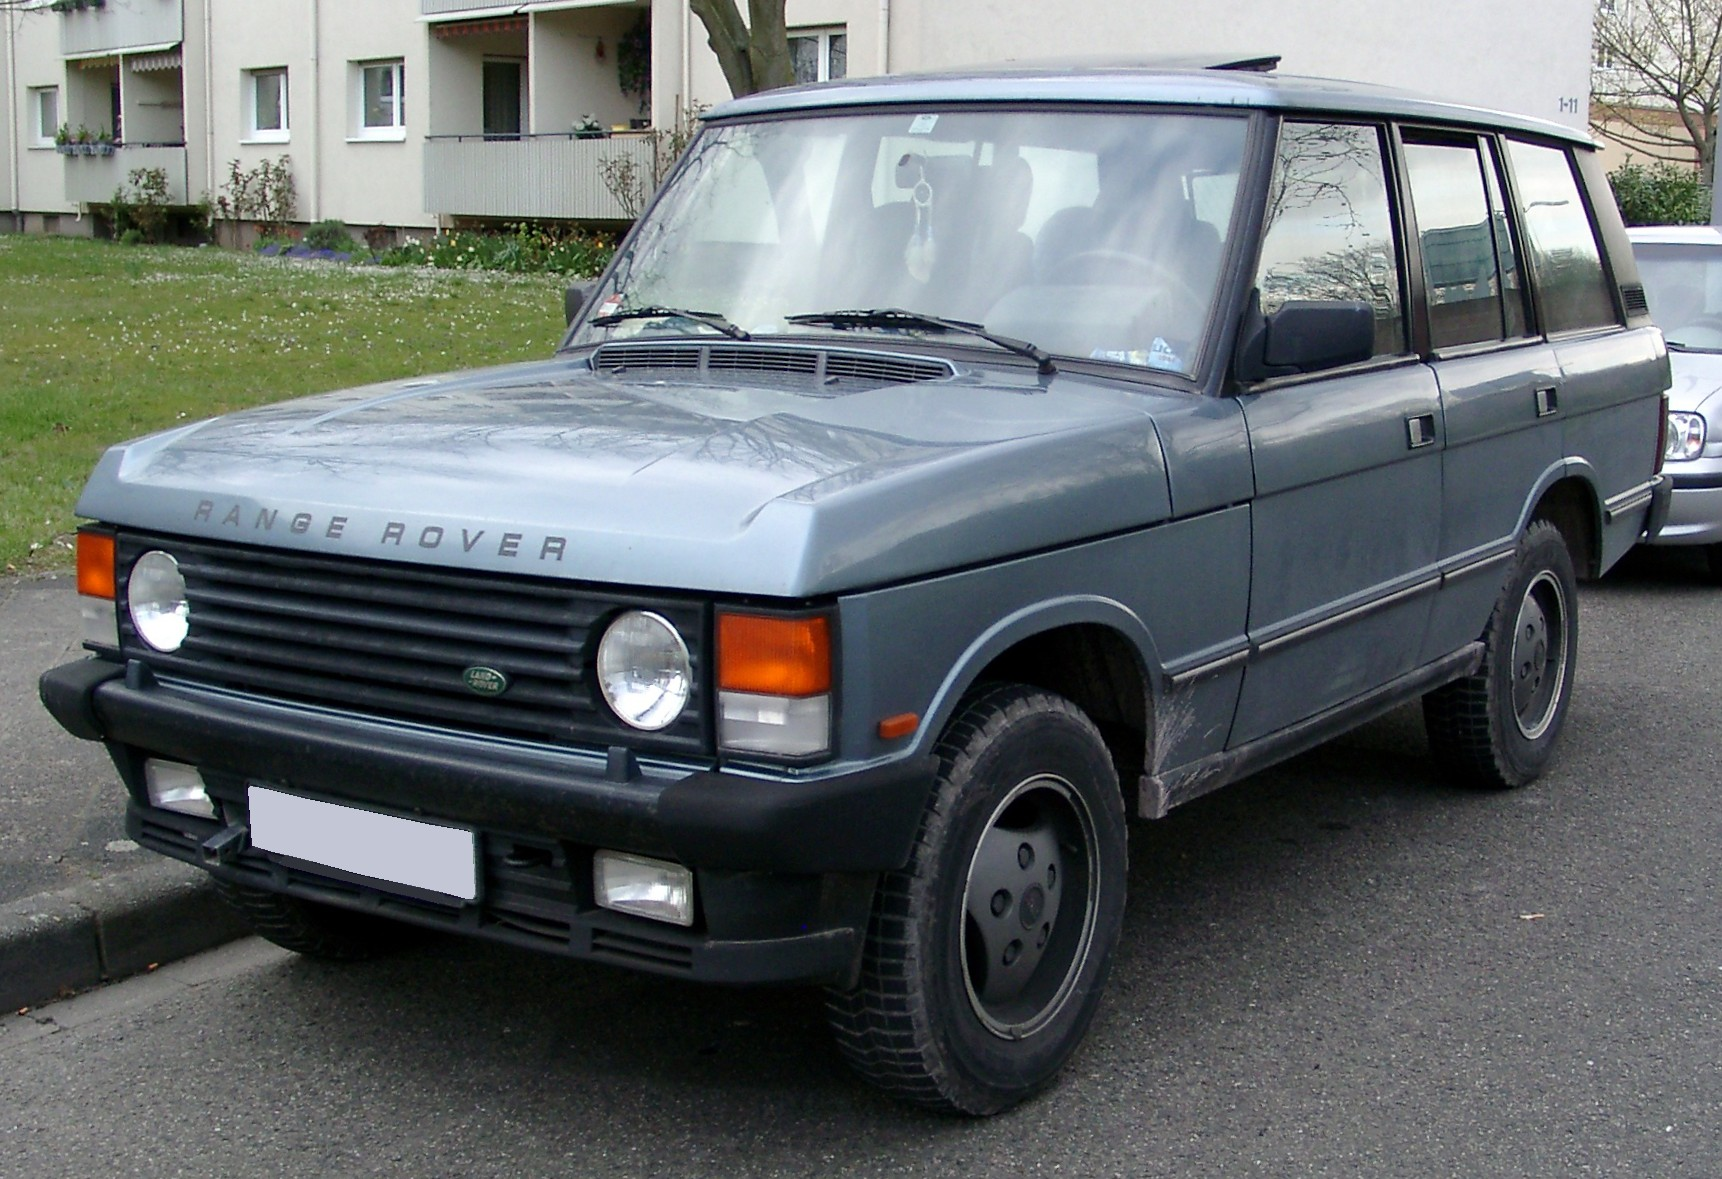 Used Land Rovers For Sale >> Range Rover - Wikiwand